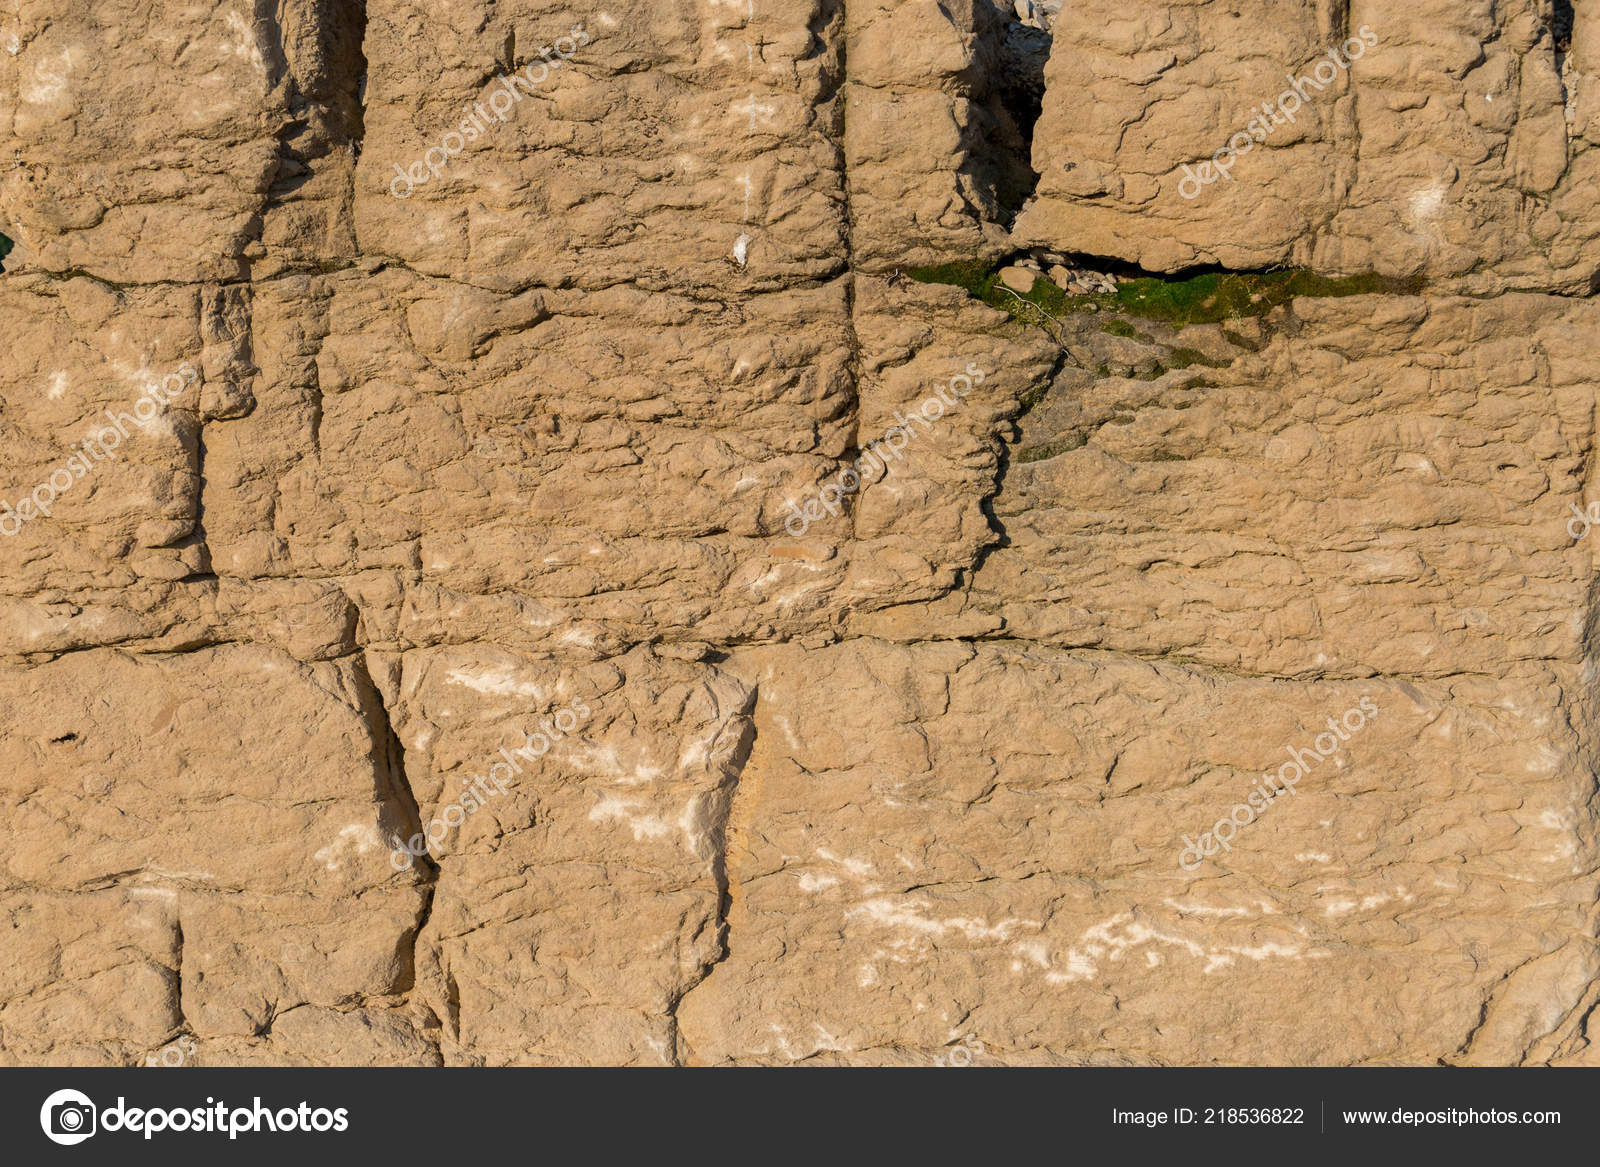 Limestone rock face geology wallpaper natural background — Stock Photo